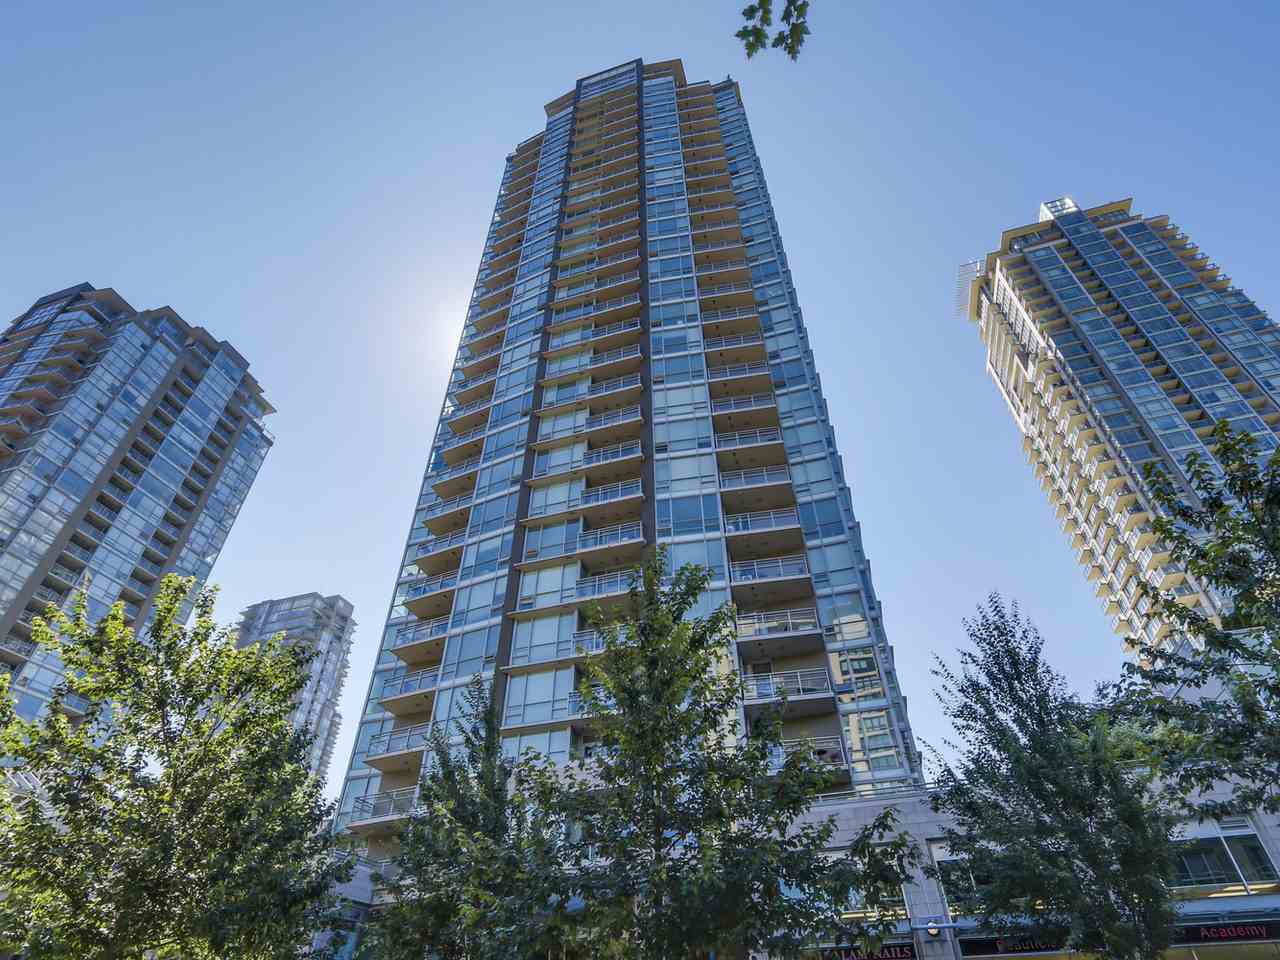 """Main Photo: 3401 2968 GLEN Drive in Coquitlam: North Coquitlam Condo for sale in """"GRAND CENTRAL 2"""" : MLS®# R2099642"""